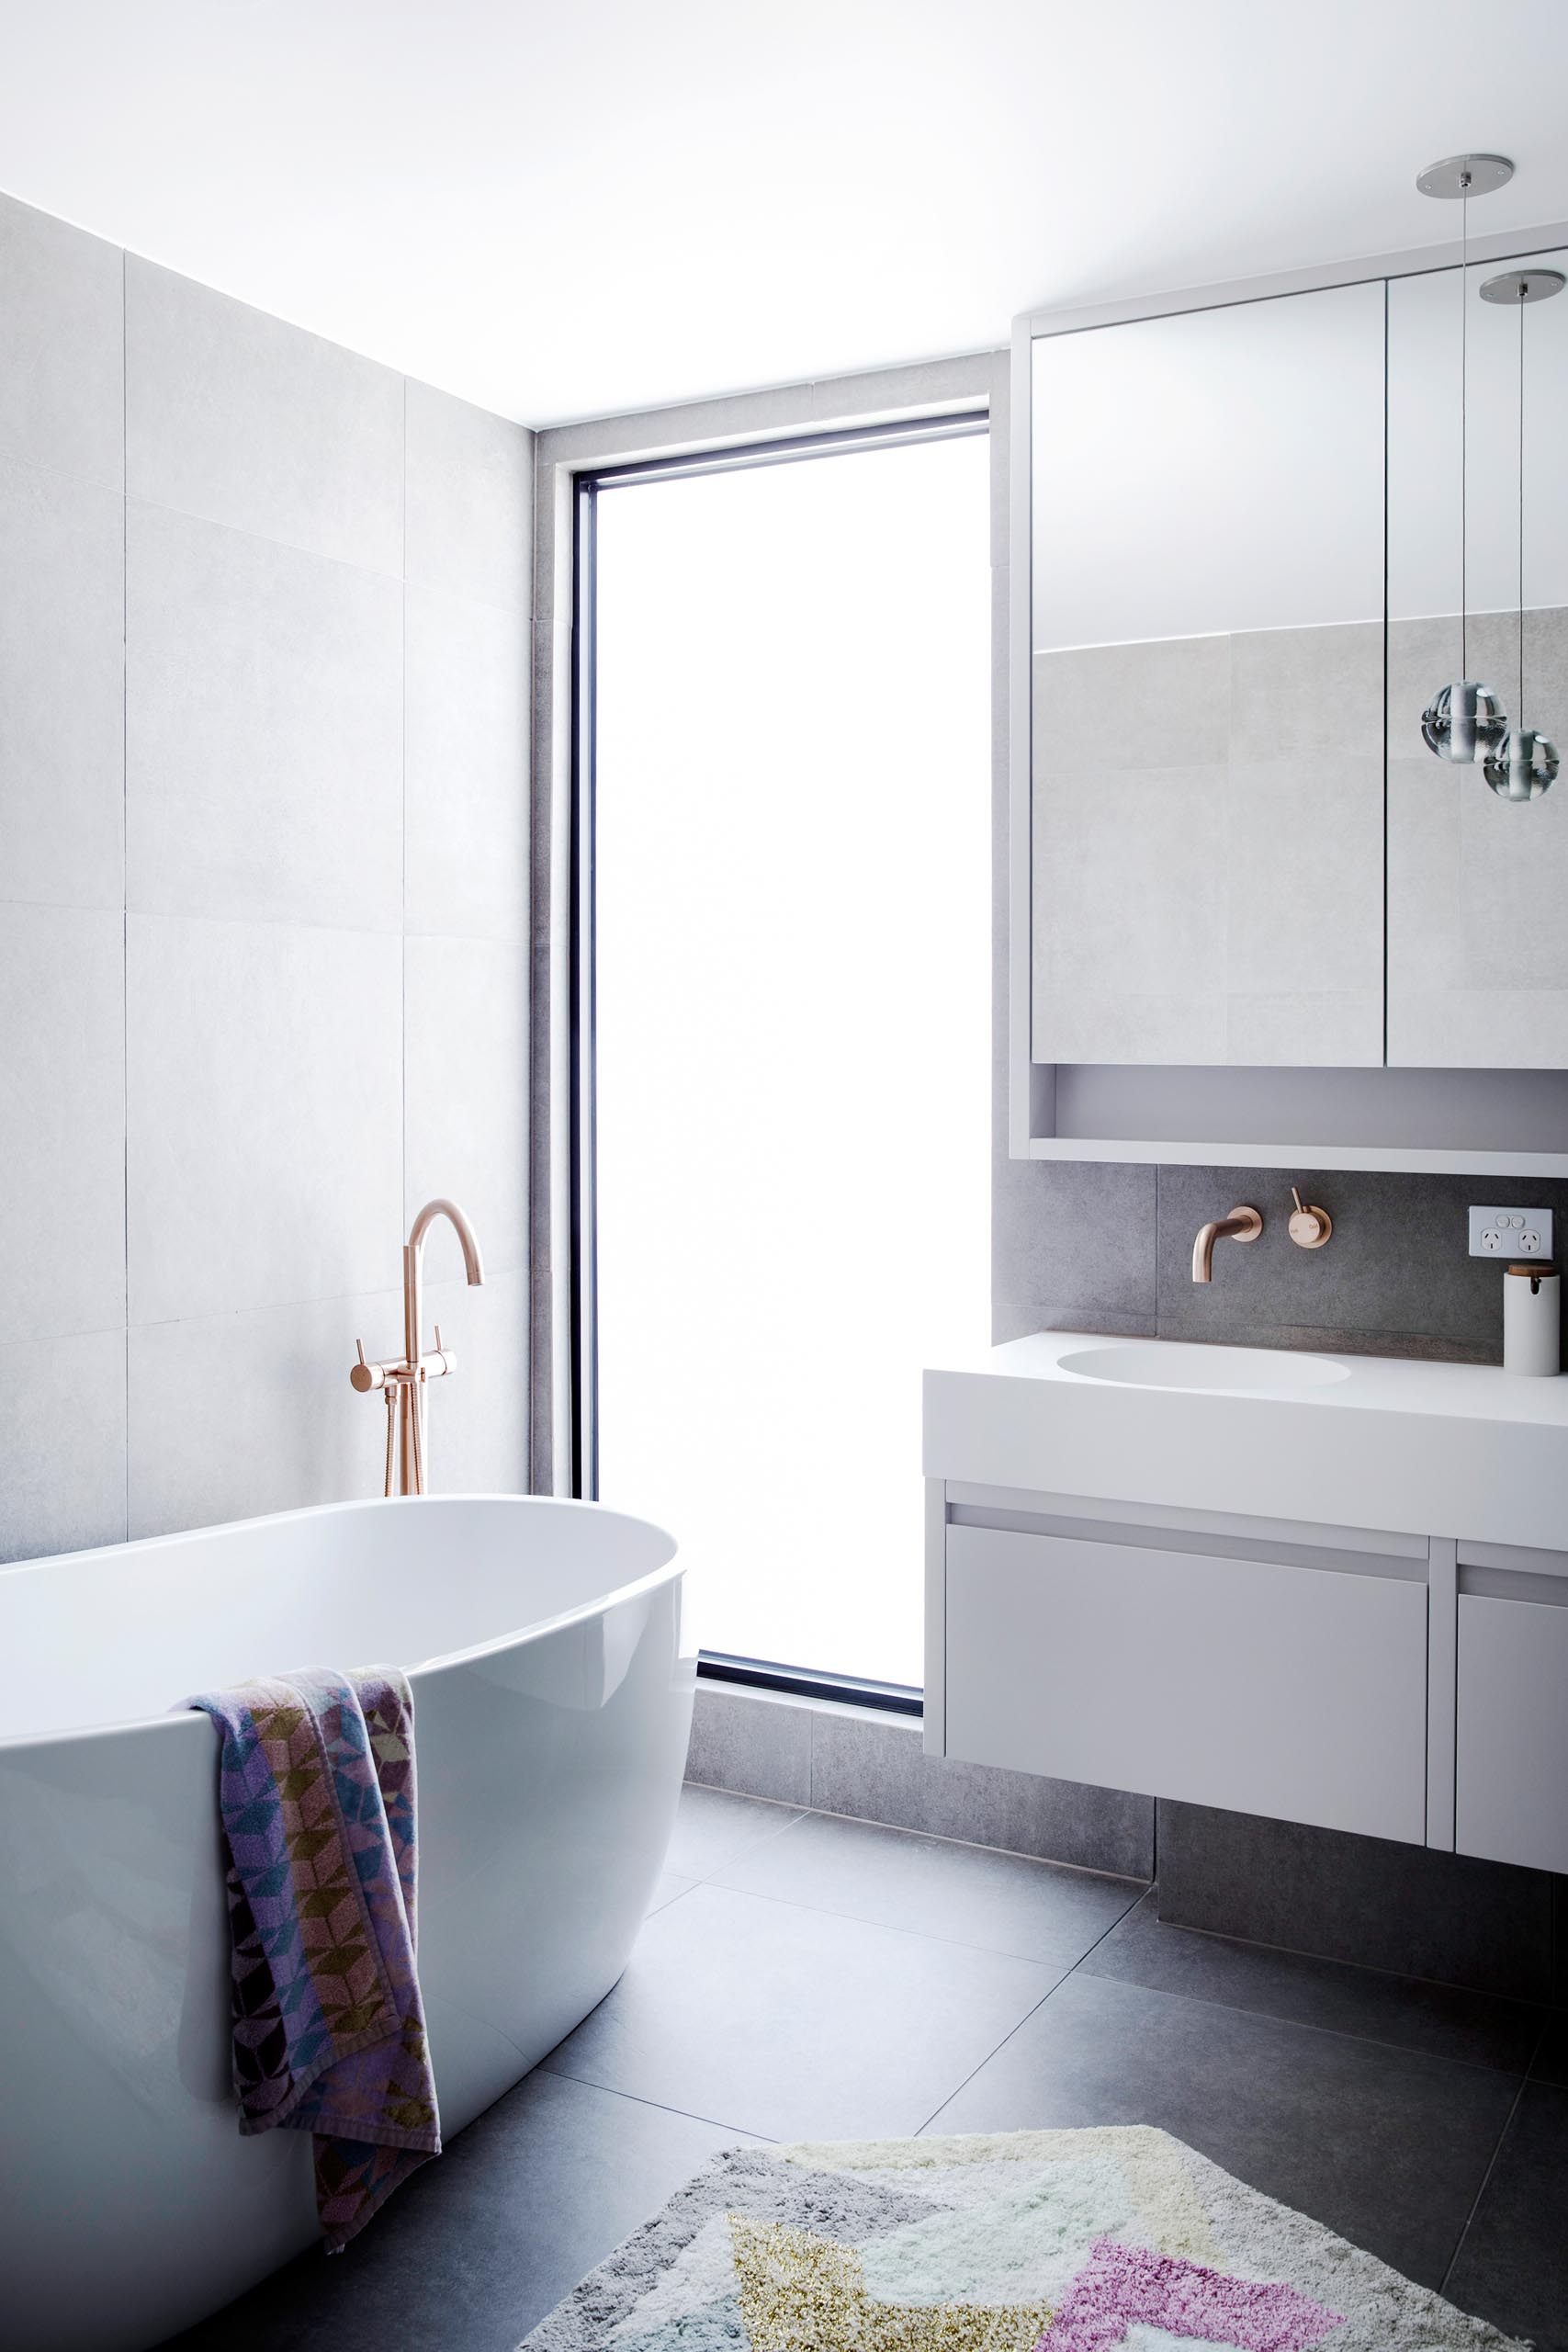 A modern bathroom with a large vertical window that floods the freestanding bathtub with natural light.